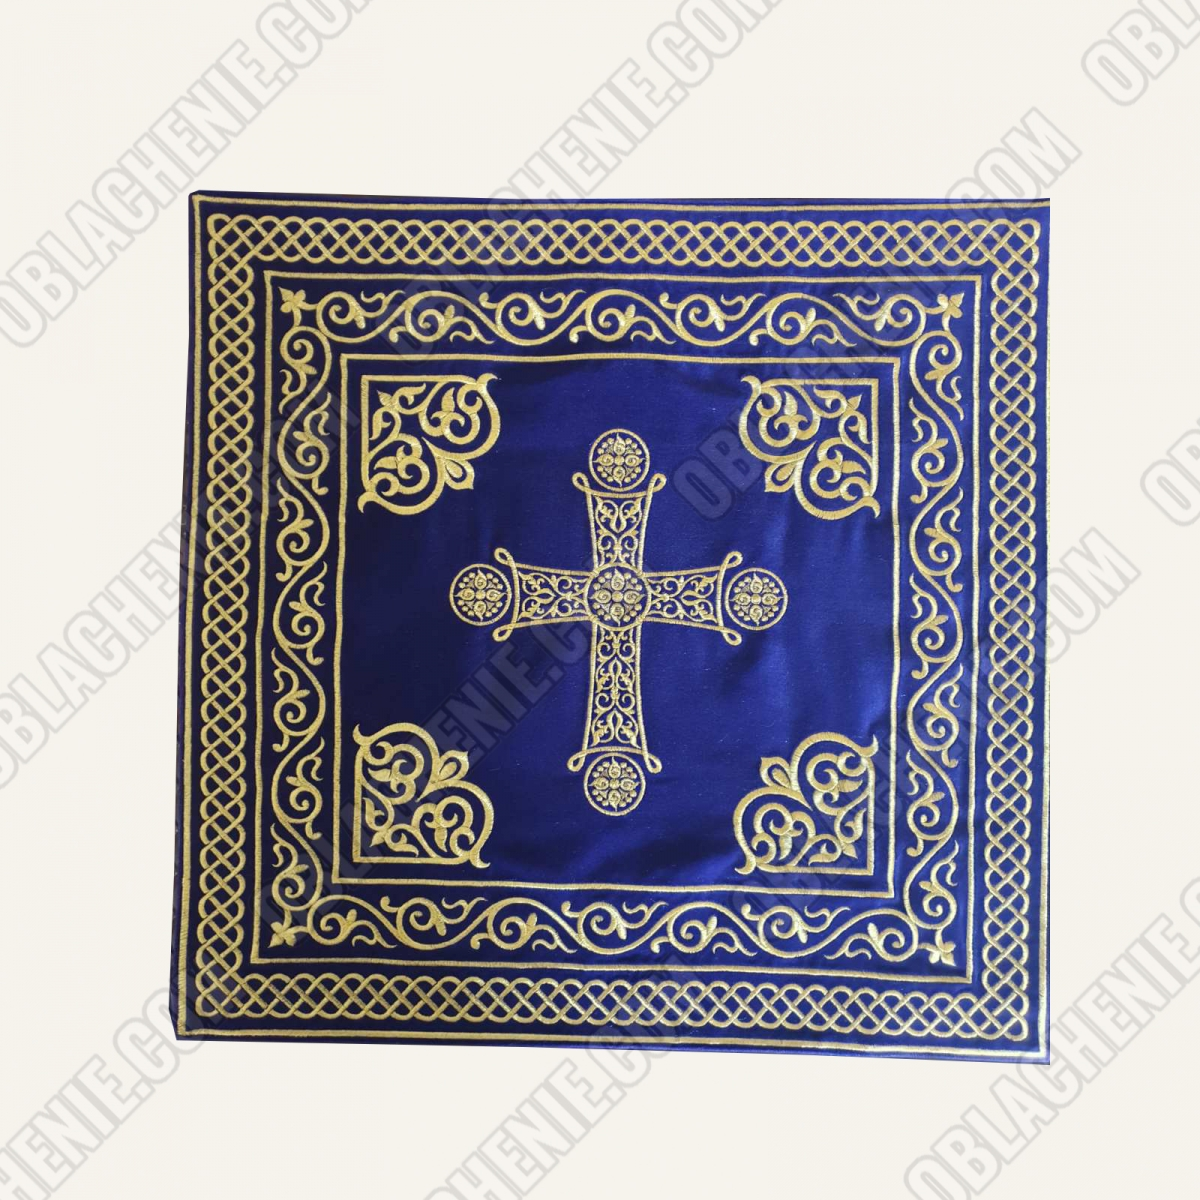 HOLY TABLE VESTMENTS 11359